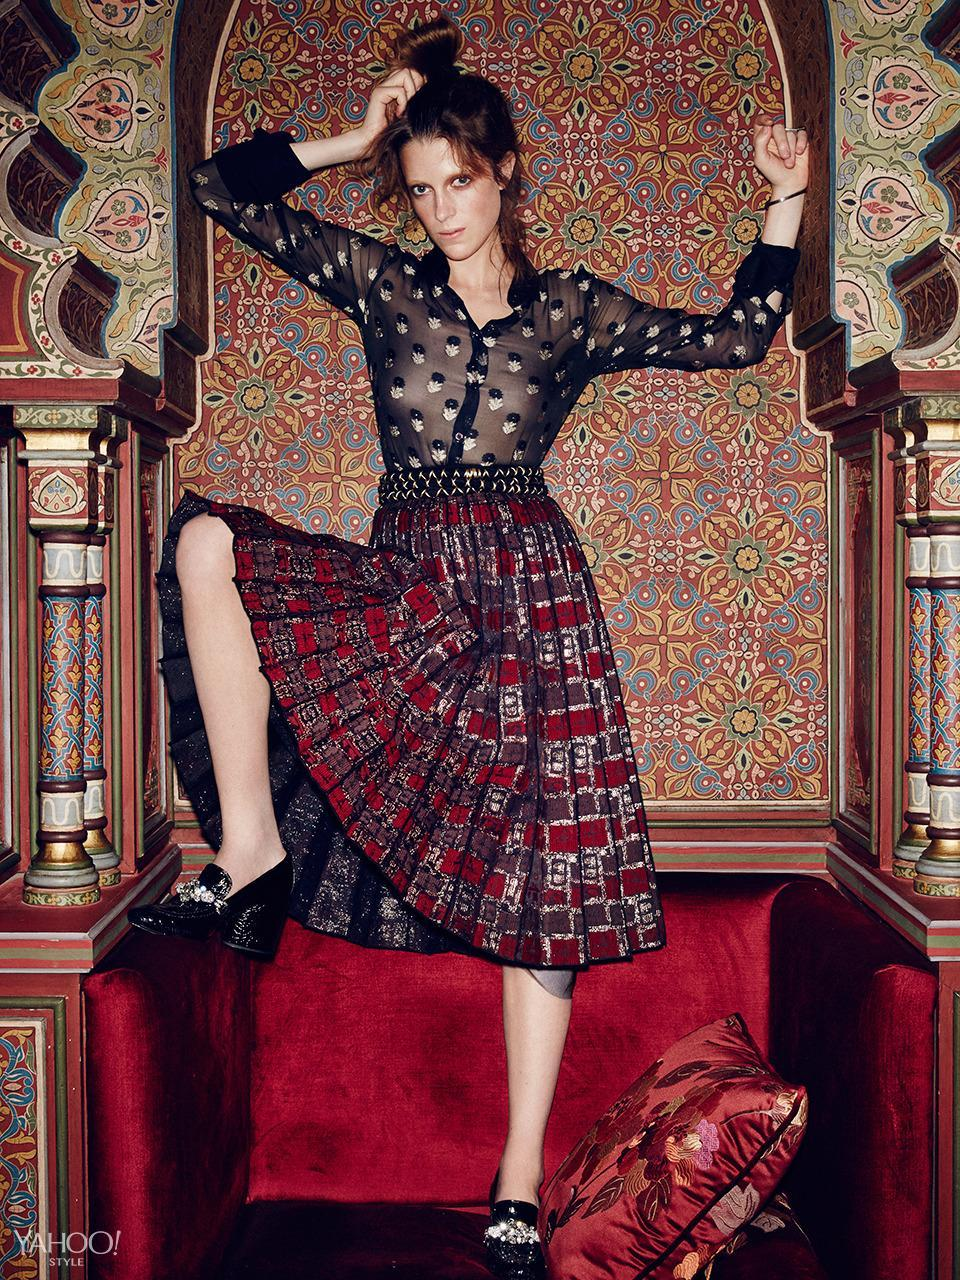 """<p>Forget everything you know about mixing prints—this is the season to pile them on. The gold embellishment on both this sheer Etro blouse and Marc Jacobs pleated skirt ties the disparate patterns and textures together. <br>Etro Sheer Black and Gold Button Up, $896,<span> etro.com</span><br>Marc Jacobs Box Jacquard Pleated Skirt, $1,400, <a href=""""http://www.marcjacobs.com/home"""" rel=""""nofollow noopener"""" target=""""_blank"""" data-ylk=""""slk:marcjacobs.com."""" class=""""link rapid-noclick-resp"""">marcjacobs.com.</a><br>New York Vintage Wrap Belt, Price Upon Request,<a href=""""http://newyorkvintage.com/"""" rel=""""nofollow noopener"""" target=""""_blank"""" data-ylk=""""slk:newyorkvintage.com"""" class=""""link rapid-noclick-resp""""> newyorkvintage.com</a><br>Marc Jacobs Embossed Croc Loafer, $2,150, <a href=""""http://www.marcjacobs.com/home"""" rel=""""nofollow noopener"""" target=""""_blank"""" data-ylk=""""slk:marcjacobs.com"""" class=""""link rapid-noclick-resp"""">marcjacobs.com</a><br>New York Vintage Rings, Price Upon Request, <a href=""""http://newyorkvintage.com/"""" rel=""""nofollow noopener"""" target=""""_blank"""" data-ylk=""""slk:newyorkvintage.com"""" class=""""link rapid-noclick-resp"""">newyorkvintage.com</a><br>Location: <a href=""""http://www.palaisfaraj.com/NS/"""" rel=""""nofollow noopener"""" target=""""_blank"""" data-ylk=""""slk:Palais Faraj Suites & Spa"""" class=""""link rapid-noclick-resp"""">Palais Faraj Suites & Spa</a></p>"""